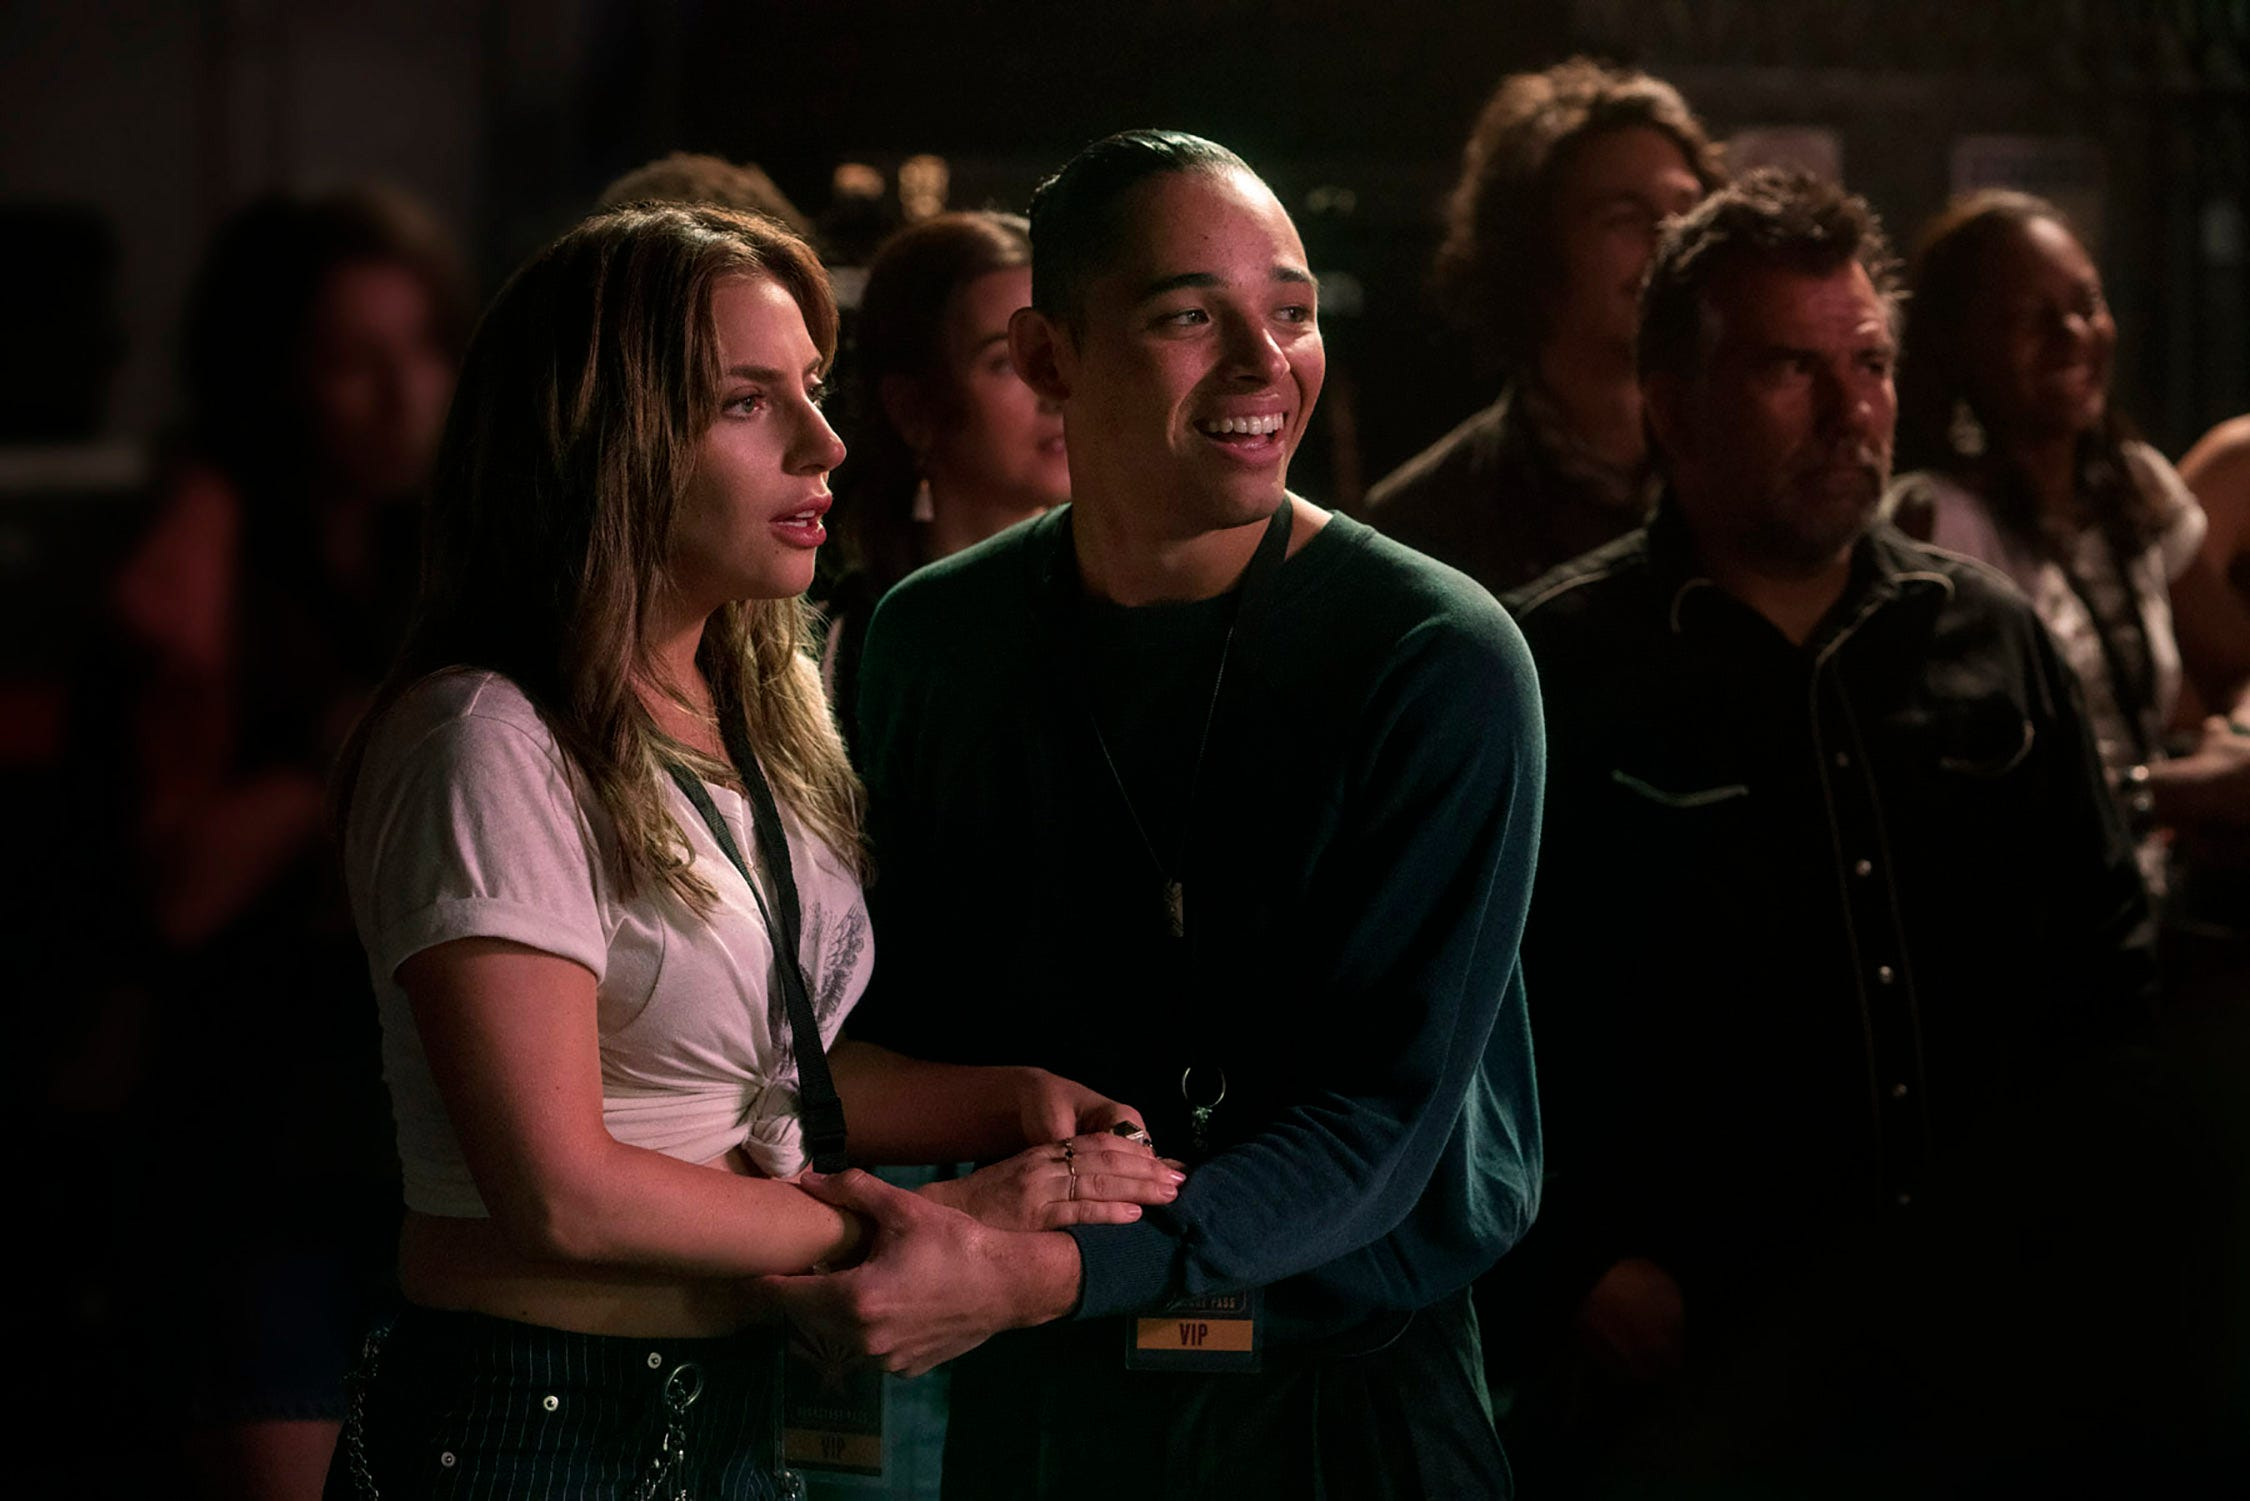 Anthony Ramos takes off as Ramon, Lady Gaga's best friend in 'A Star Is Born'